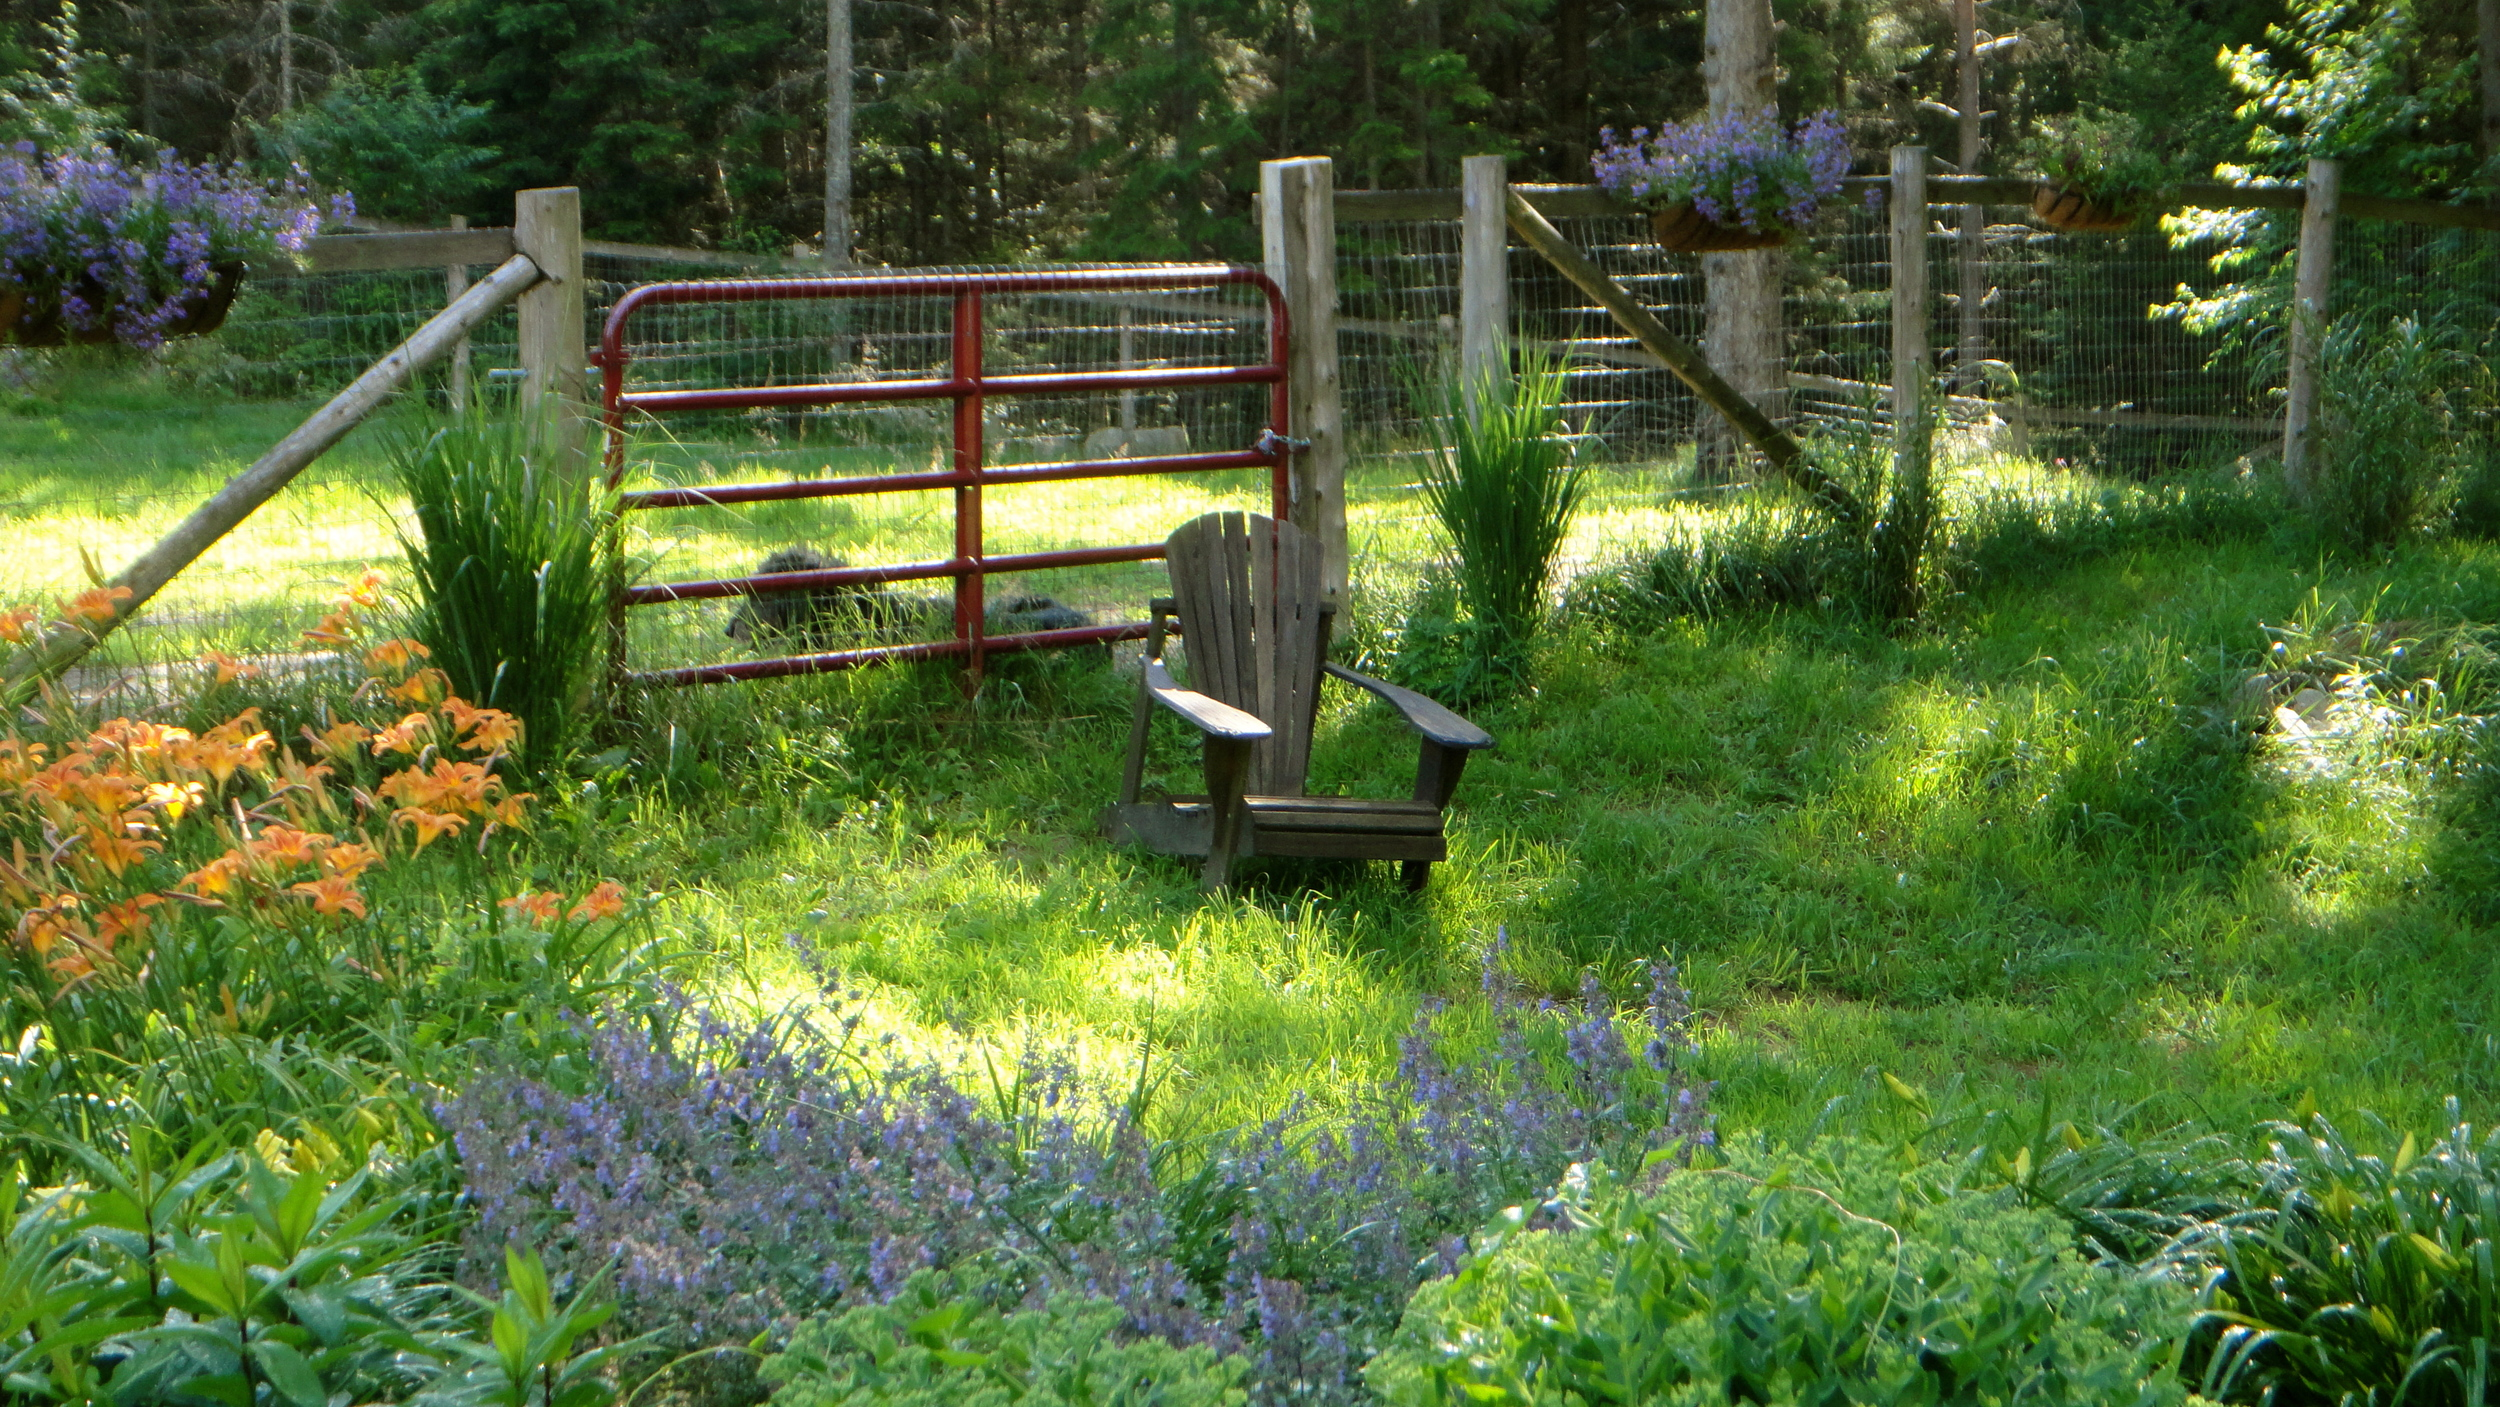 A 6-foot wide farm gate is sited to allow riding lawn mower access. Note cross posts on ends to strengthen fencing.